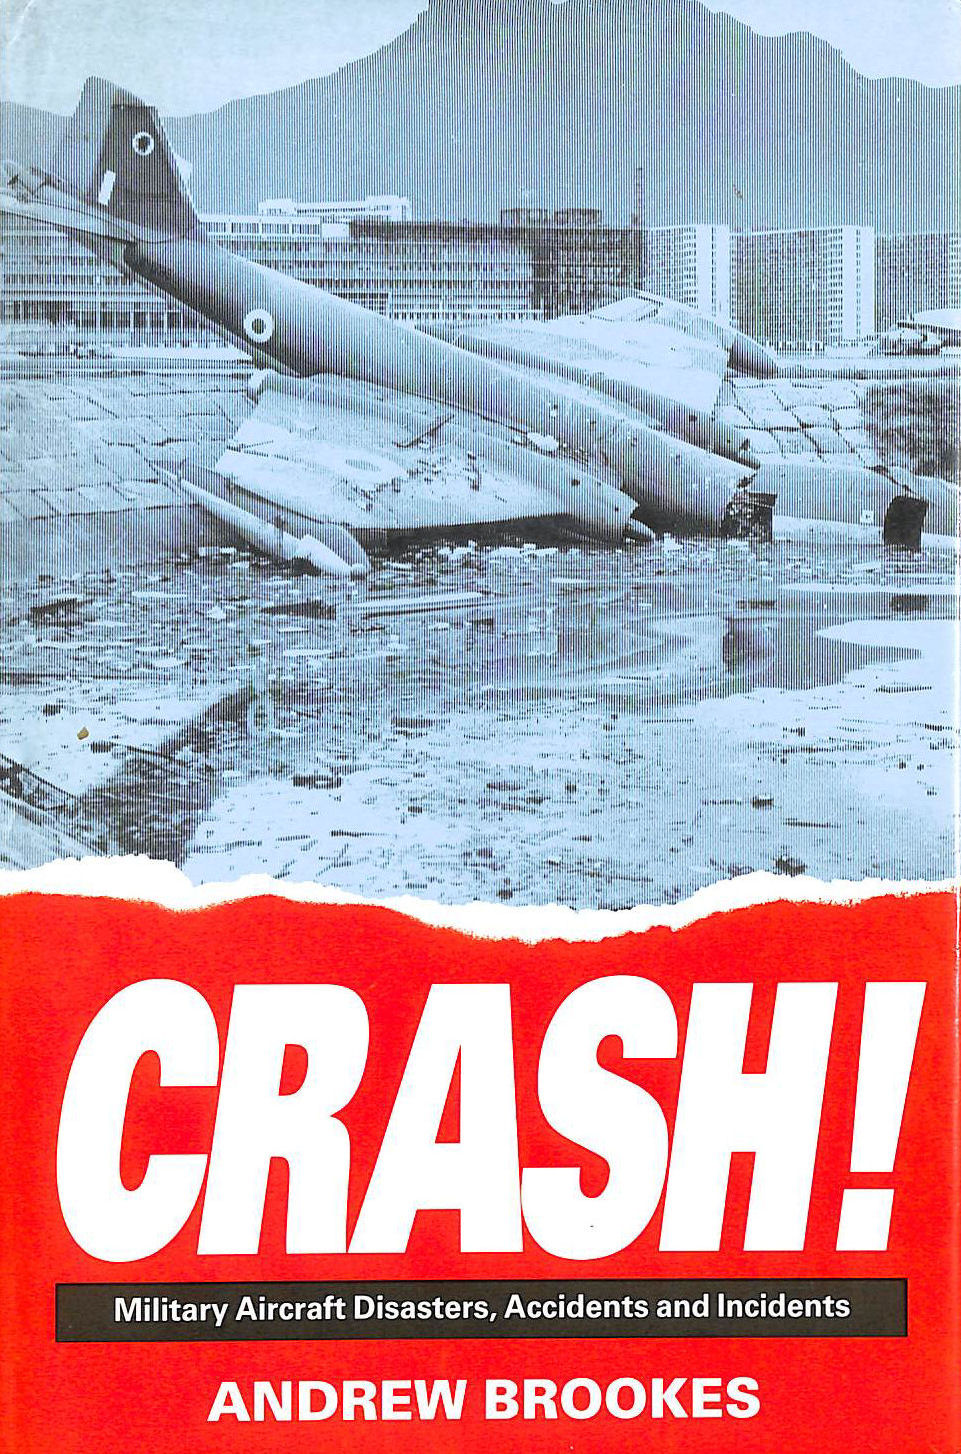 Image for Crash! Military Aircraft Disasters, Accidents and Incidents